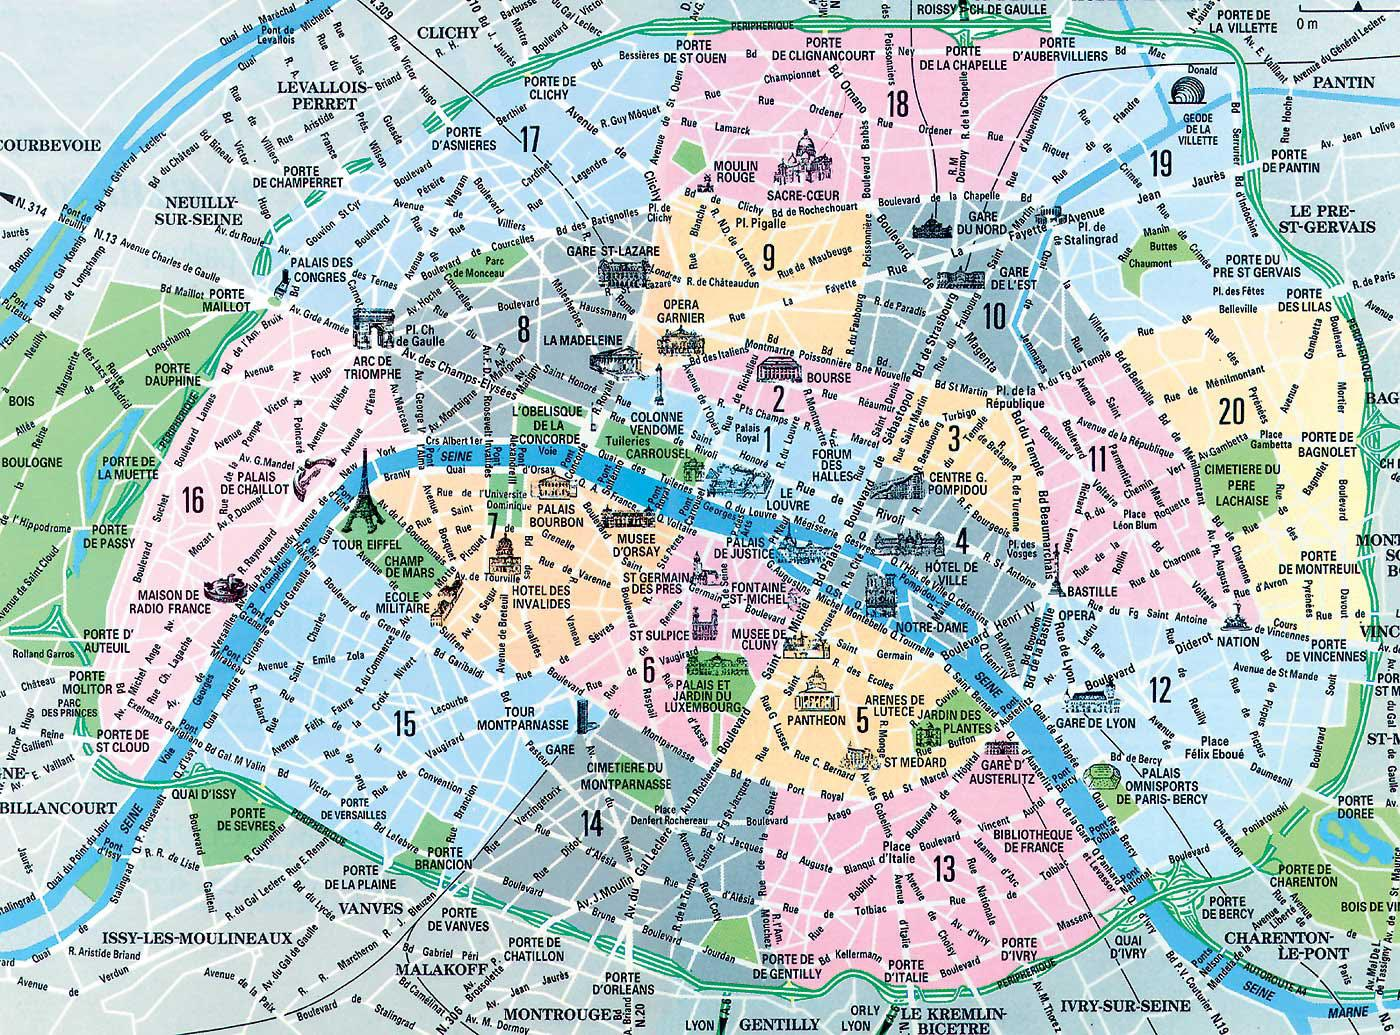 Cartina Quartieri Parigi.Arrondissement Di Parigi Mappa Di Parigi Francia Arrondissement Mappa Ile De France Francia